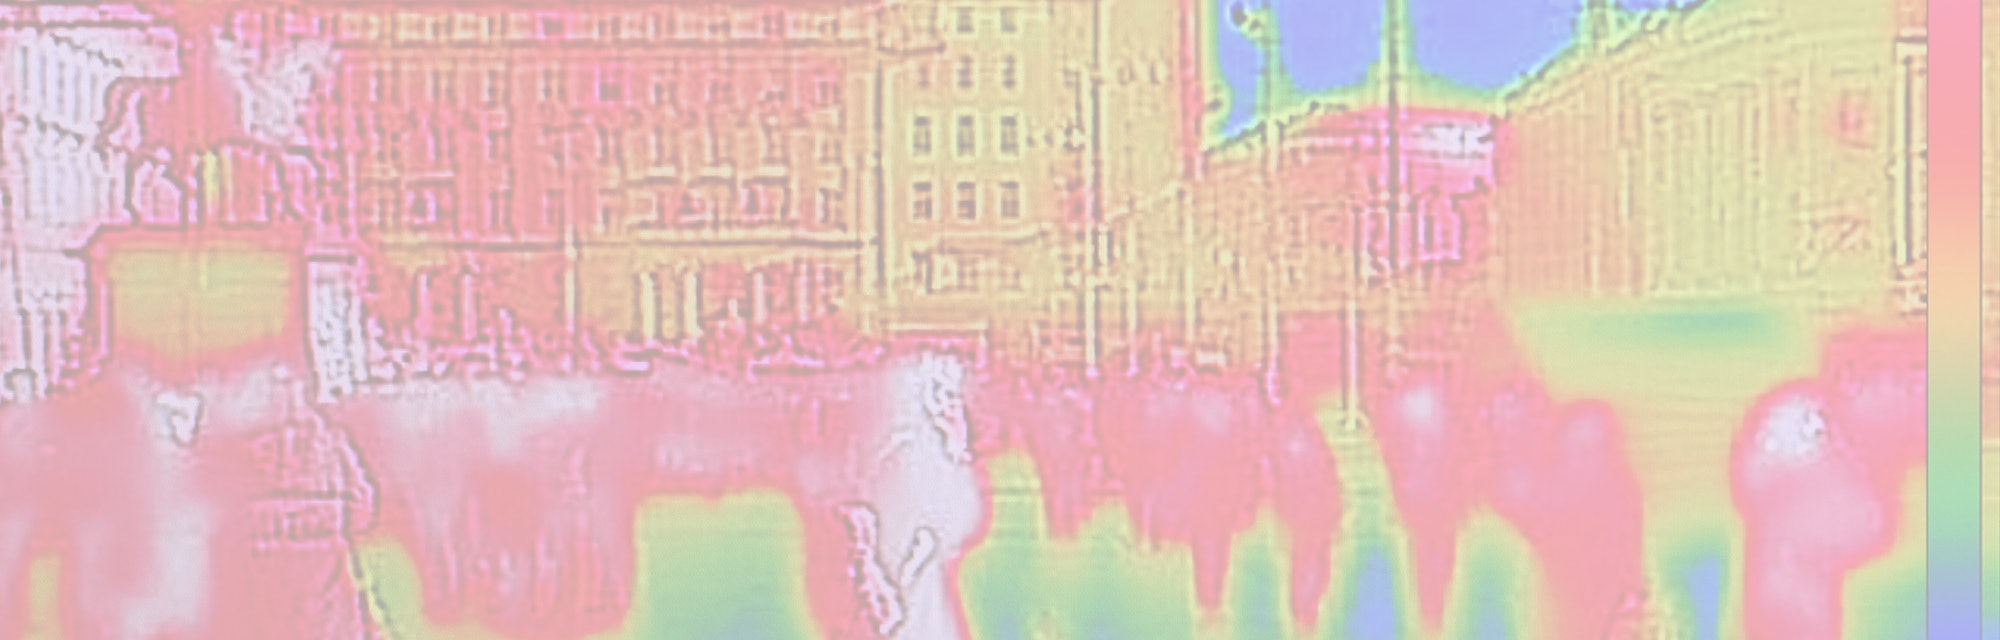 Infrared Thermal image of people walking the city streets, on a cold winter day